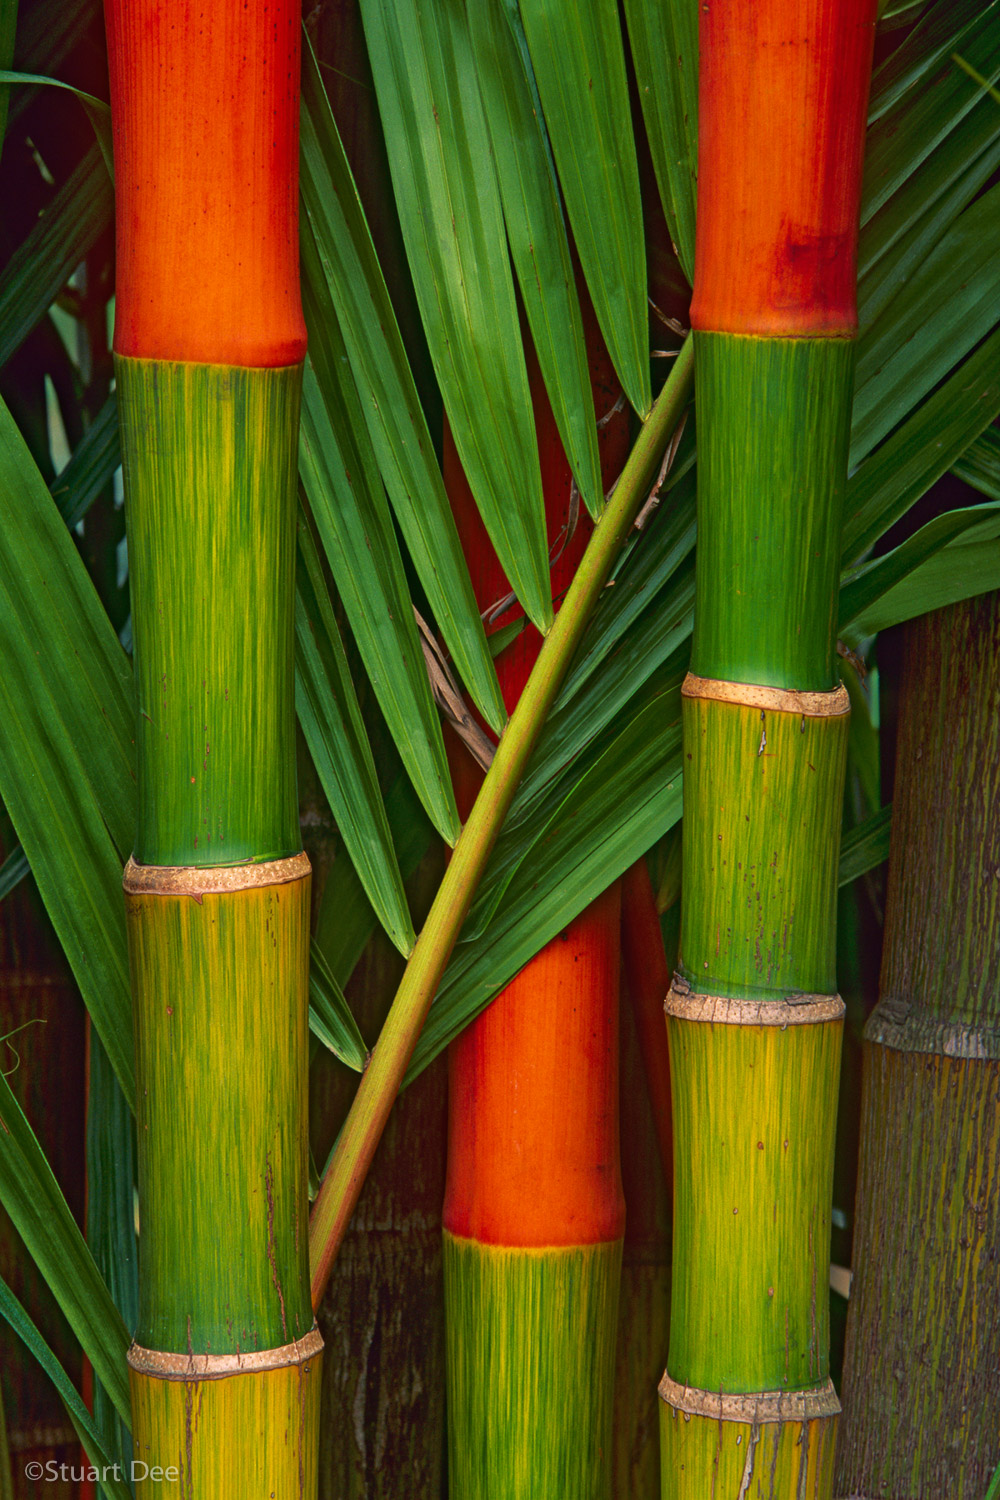 Orange and green bamboo, Kuala Lumpur, Malaysia. Bamboo is the fastest growing plant on earth, growing up to three feet a day. It is one of the most versatile materials found in nature, and is used in hundreds of products.